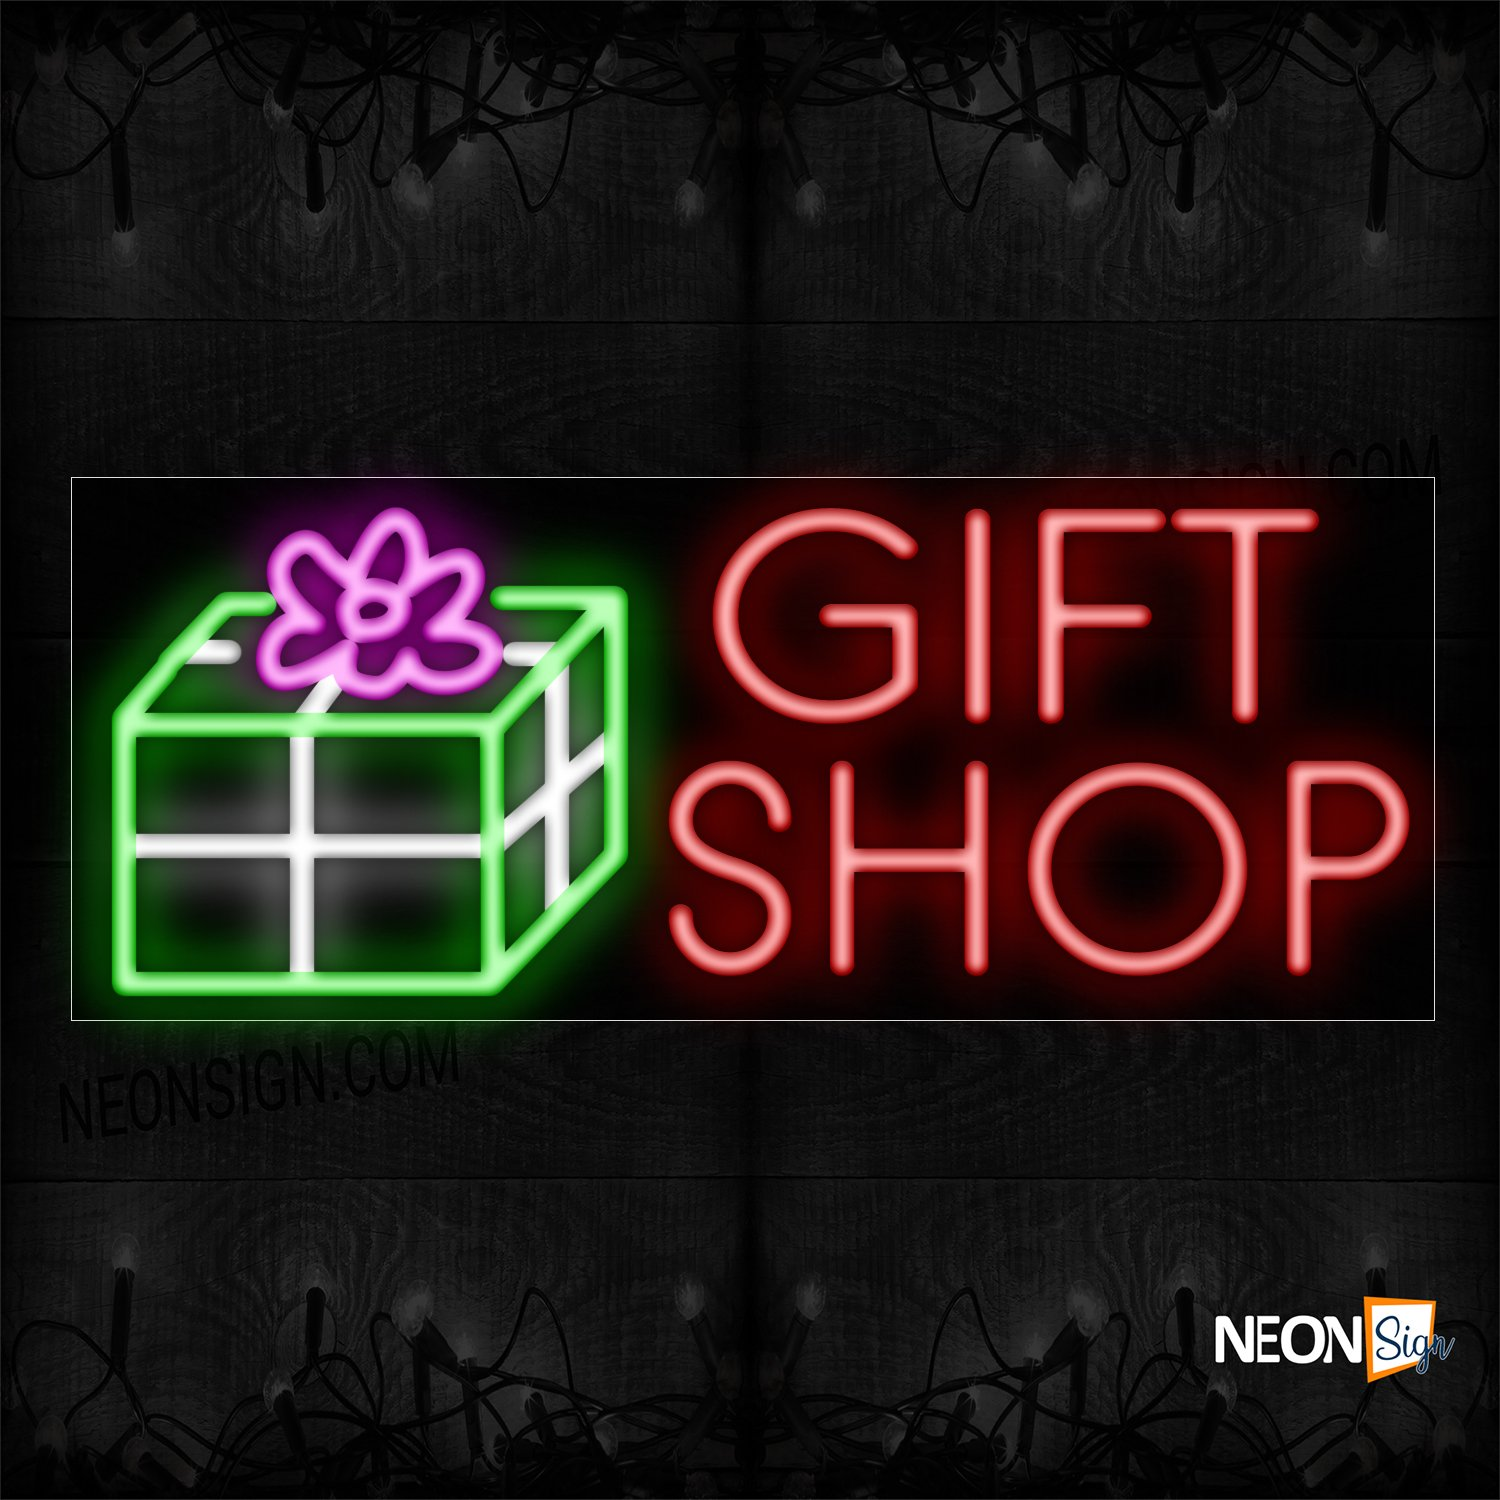 Image of 11413 Gift Shop With Logo Neon Sign_13x32 Black Backing